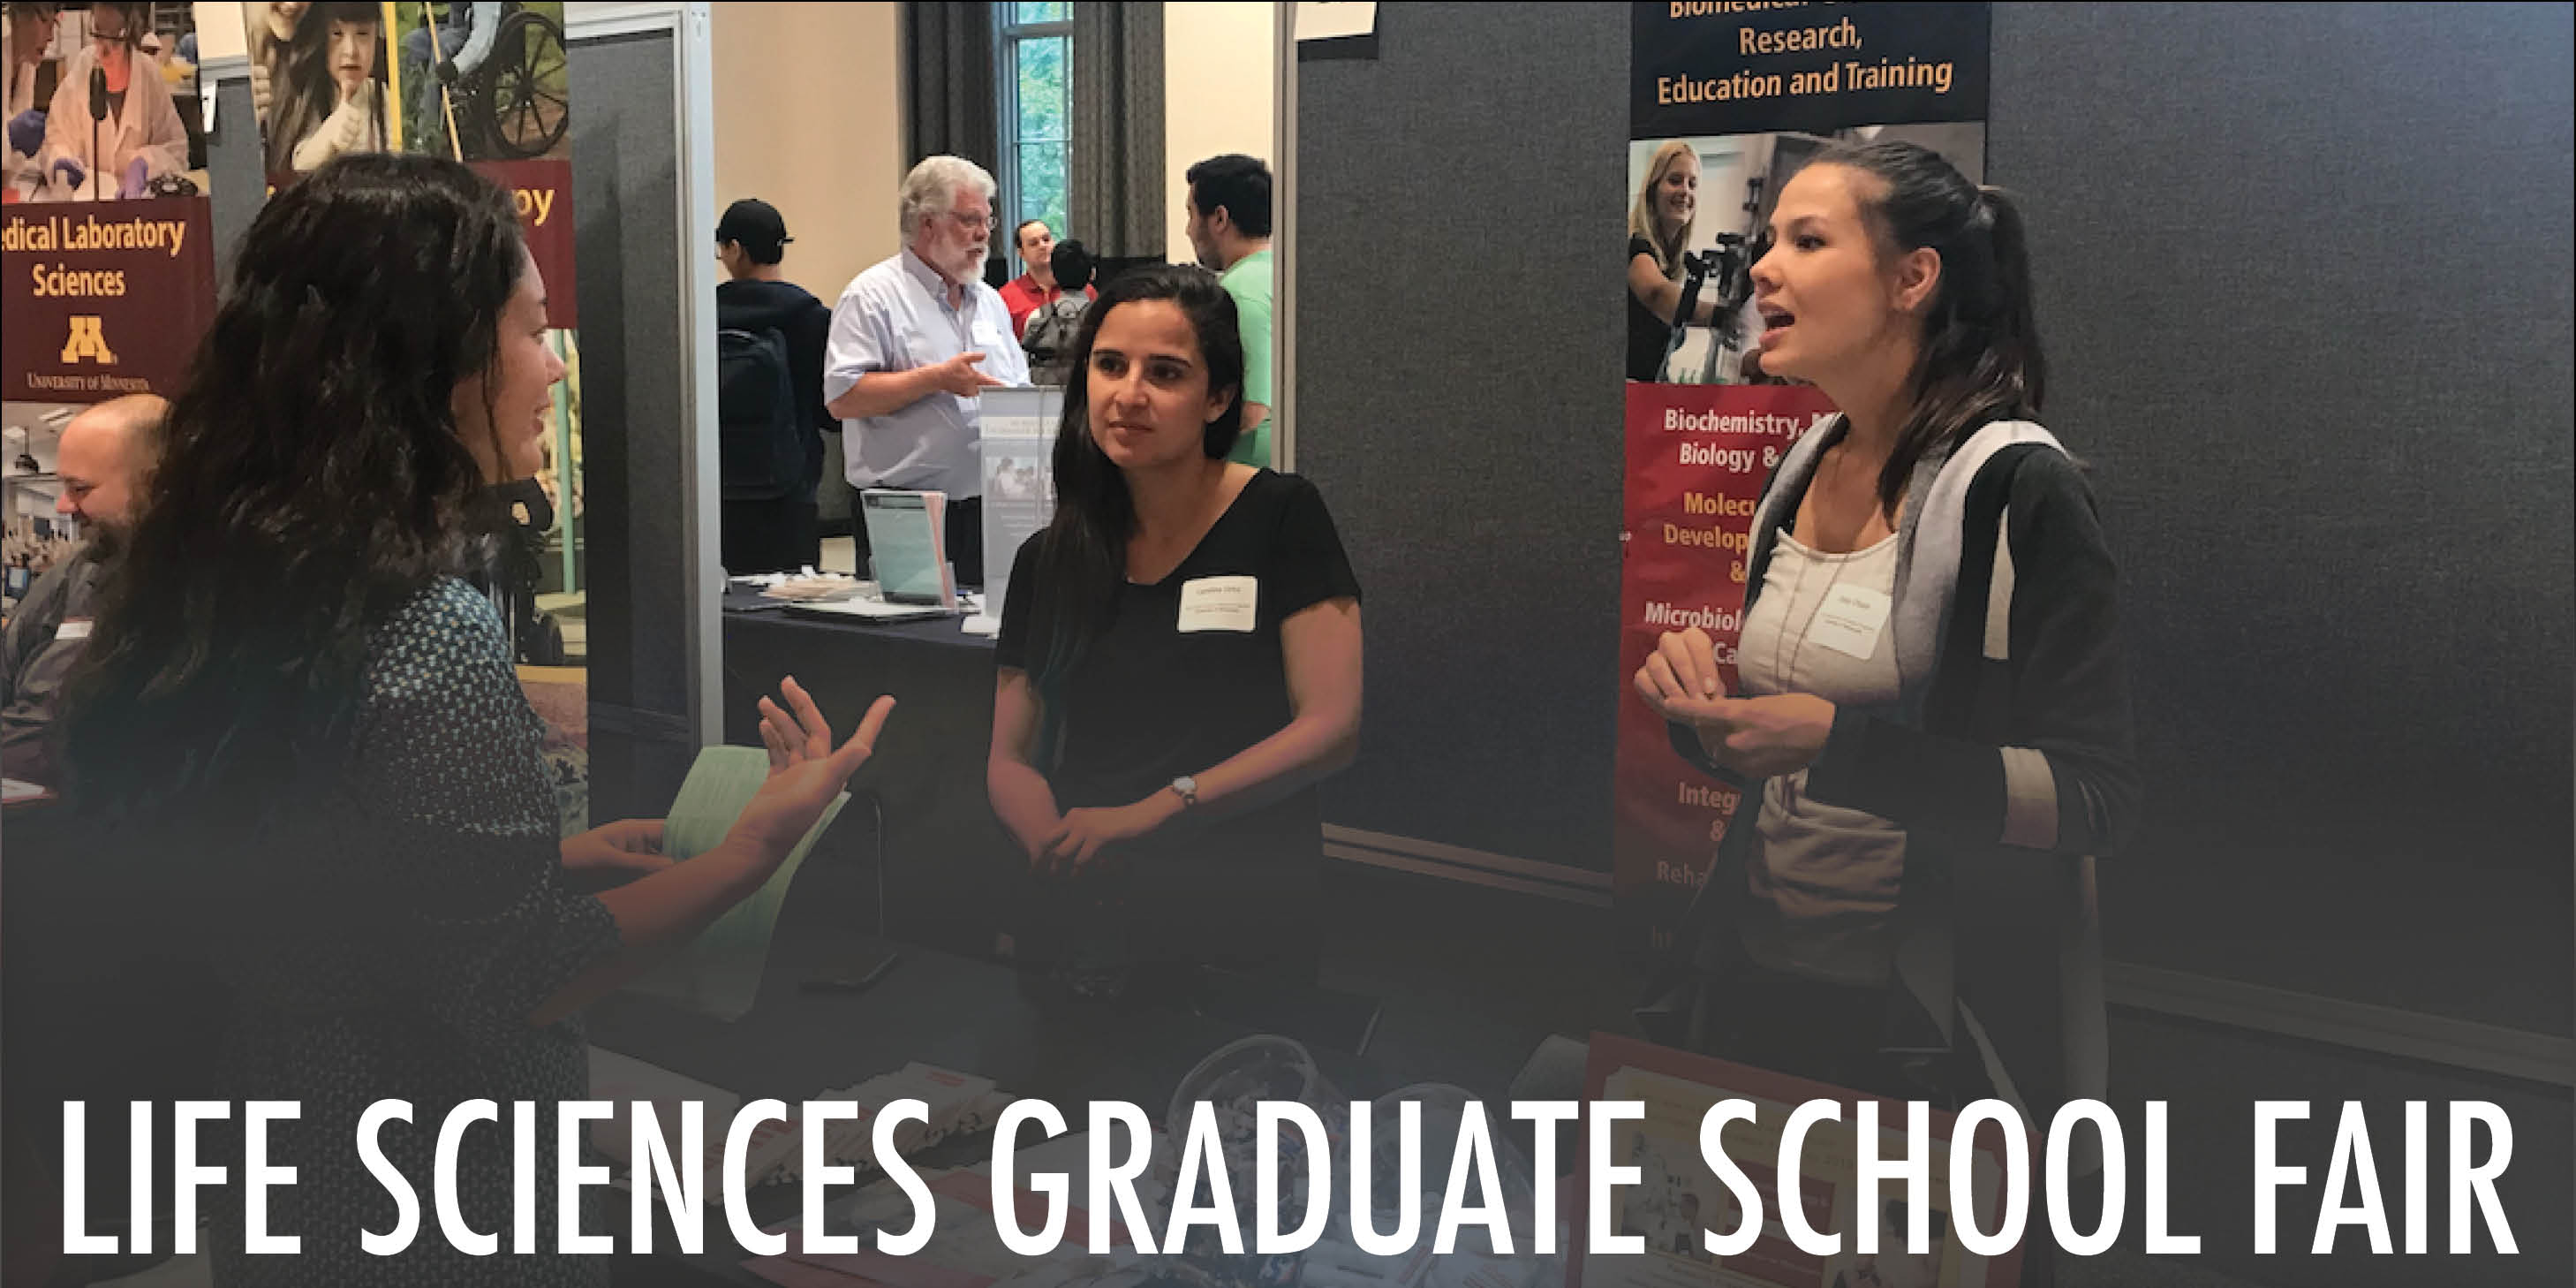 Life Sciences Graduate School Fair